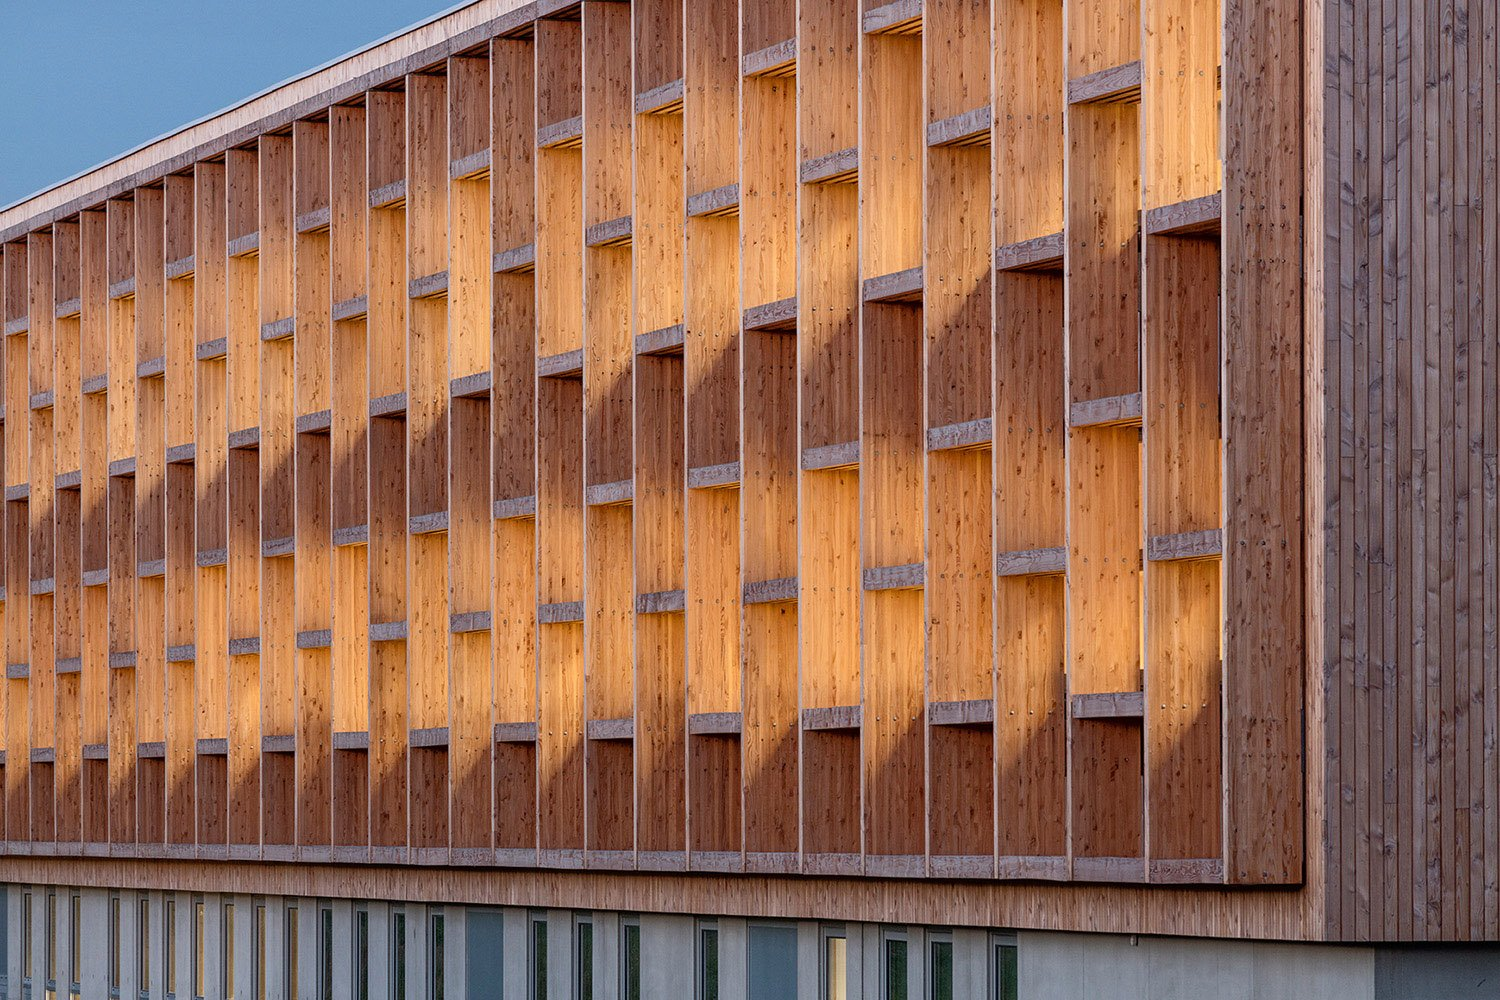 College Lamballe - detail of the wooden structure of the facade Luc Boegly